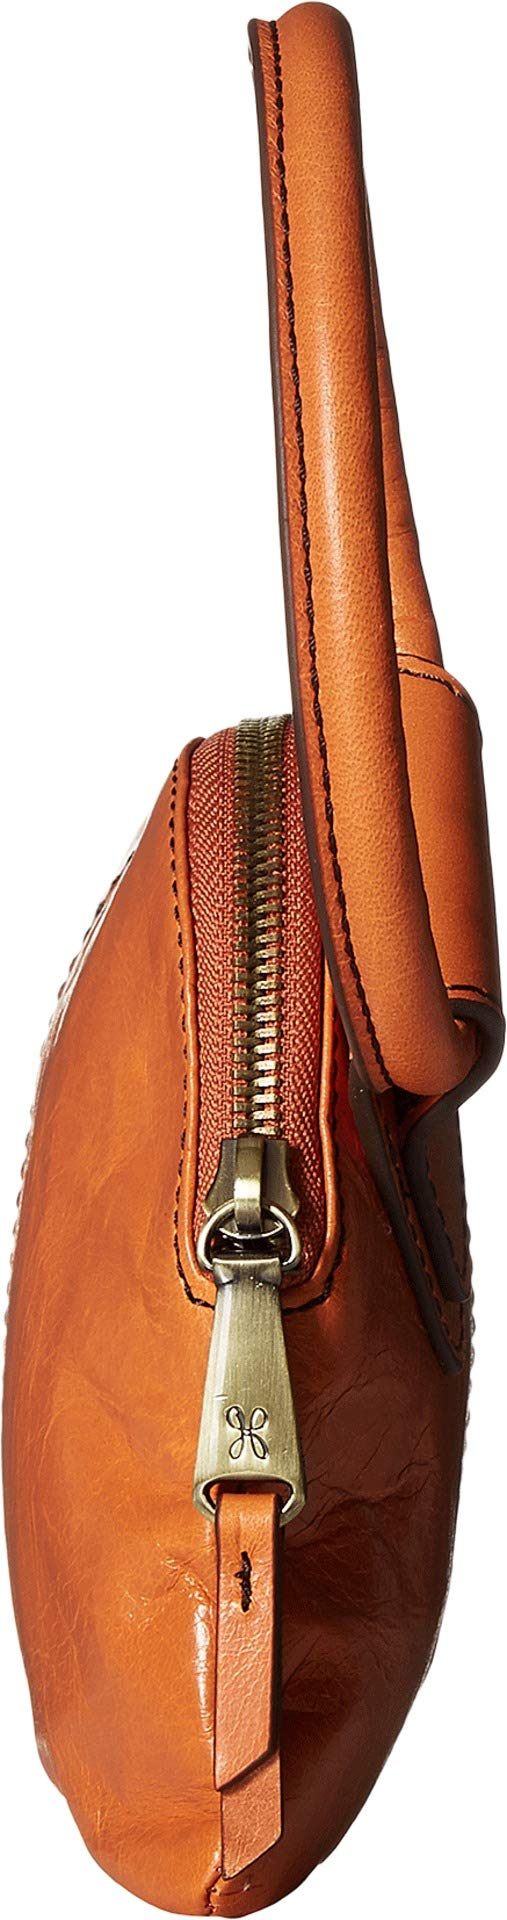 Hobo Women's Leather Sable Wristlet Clutch Wallet (Dusty Coral) by HOBO (Image #3)